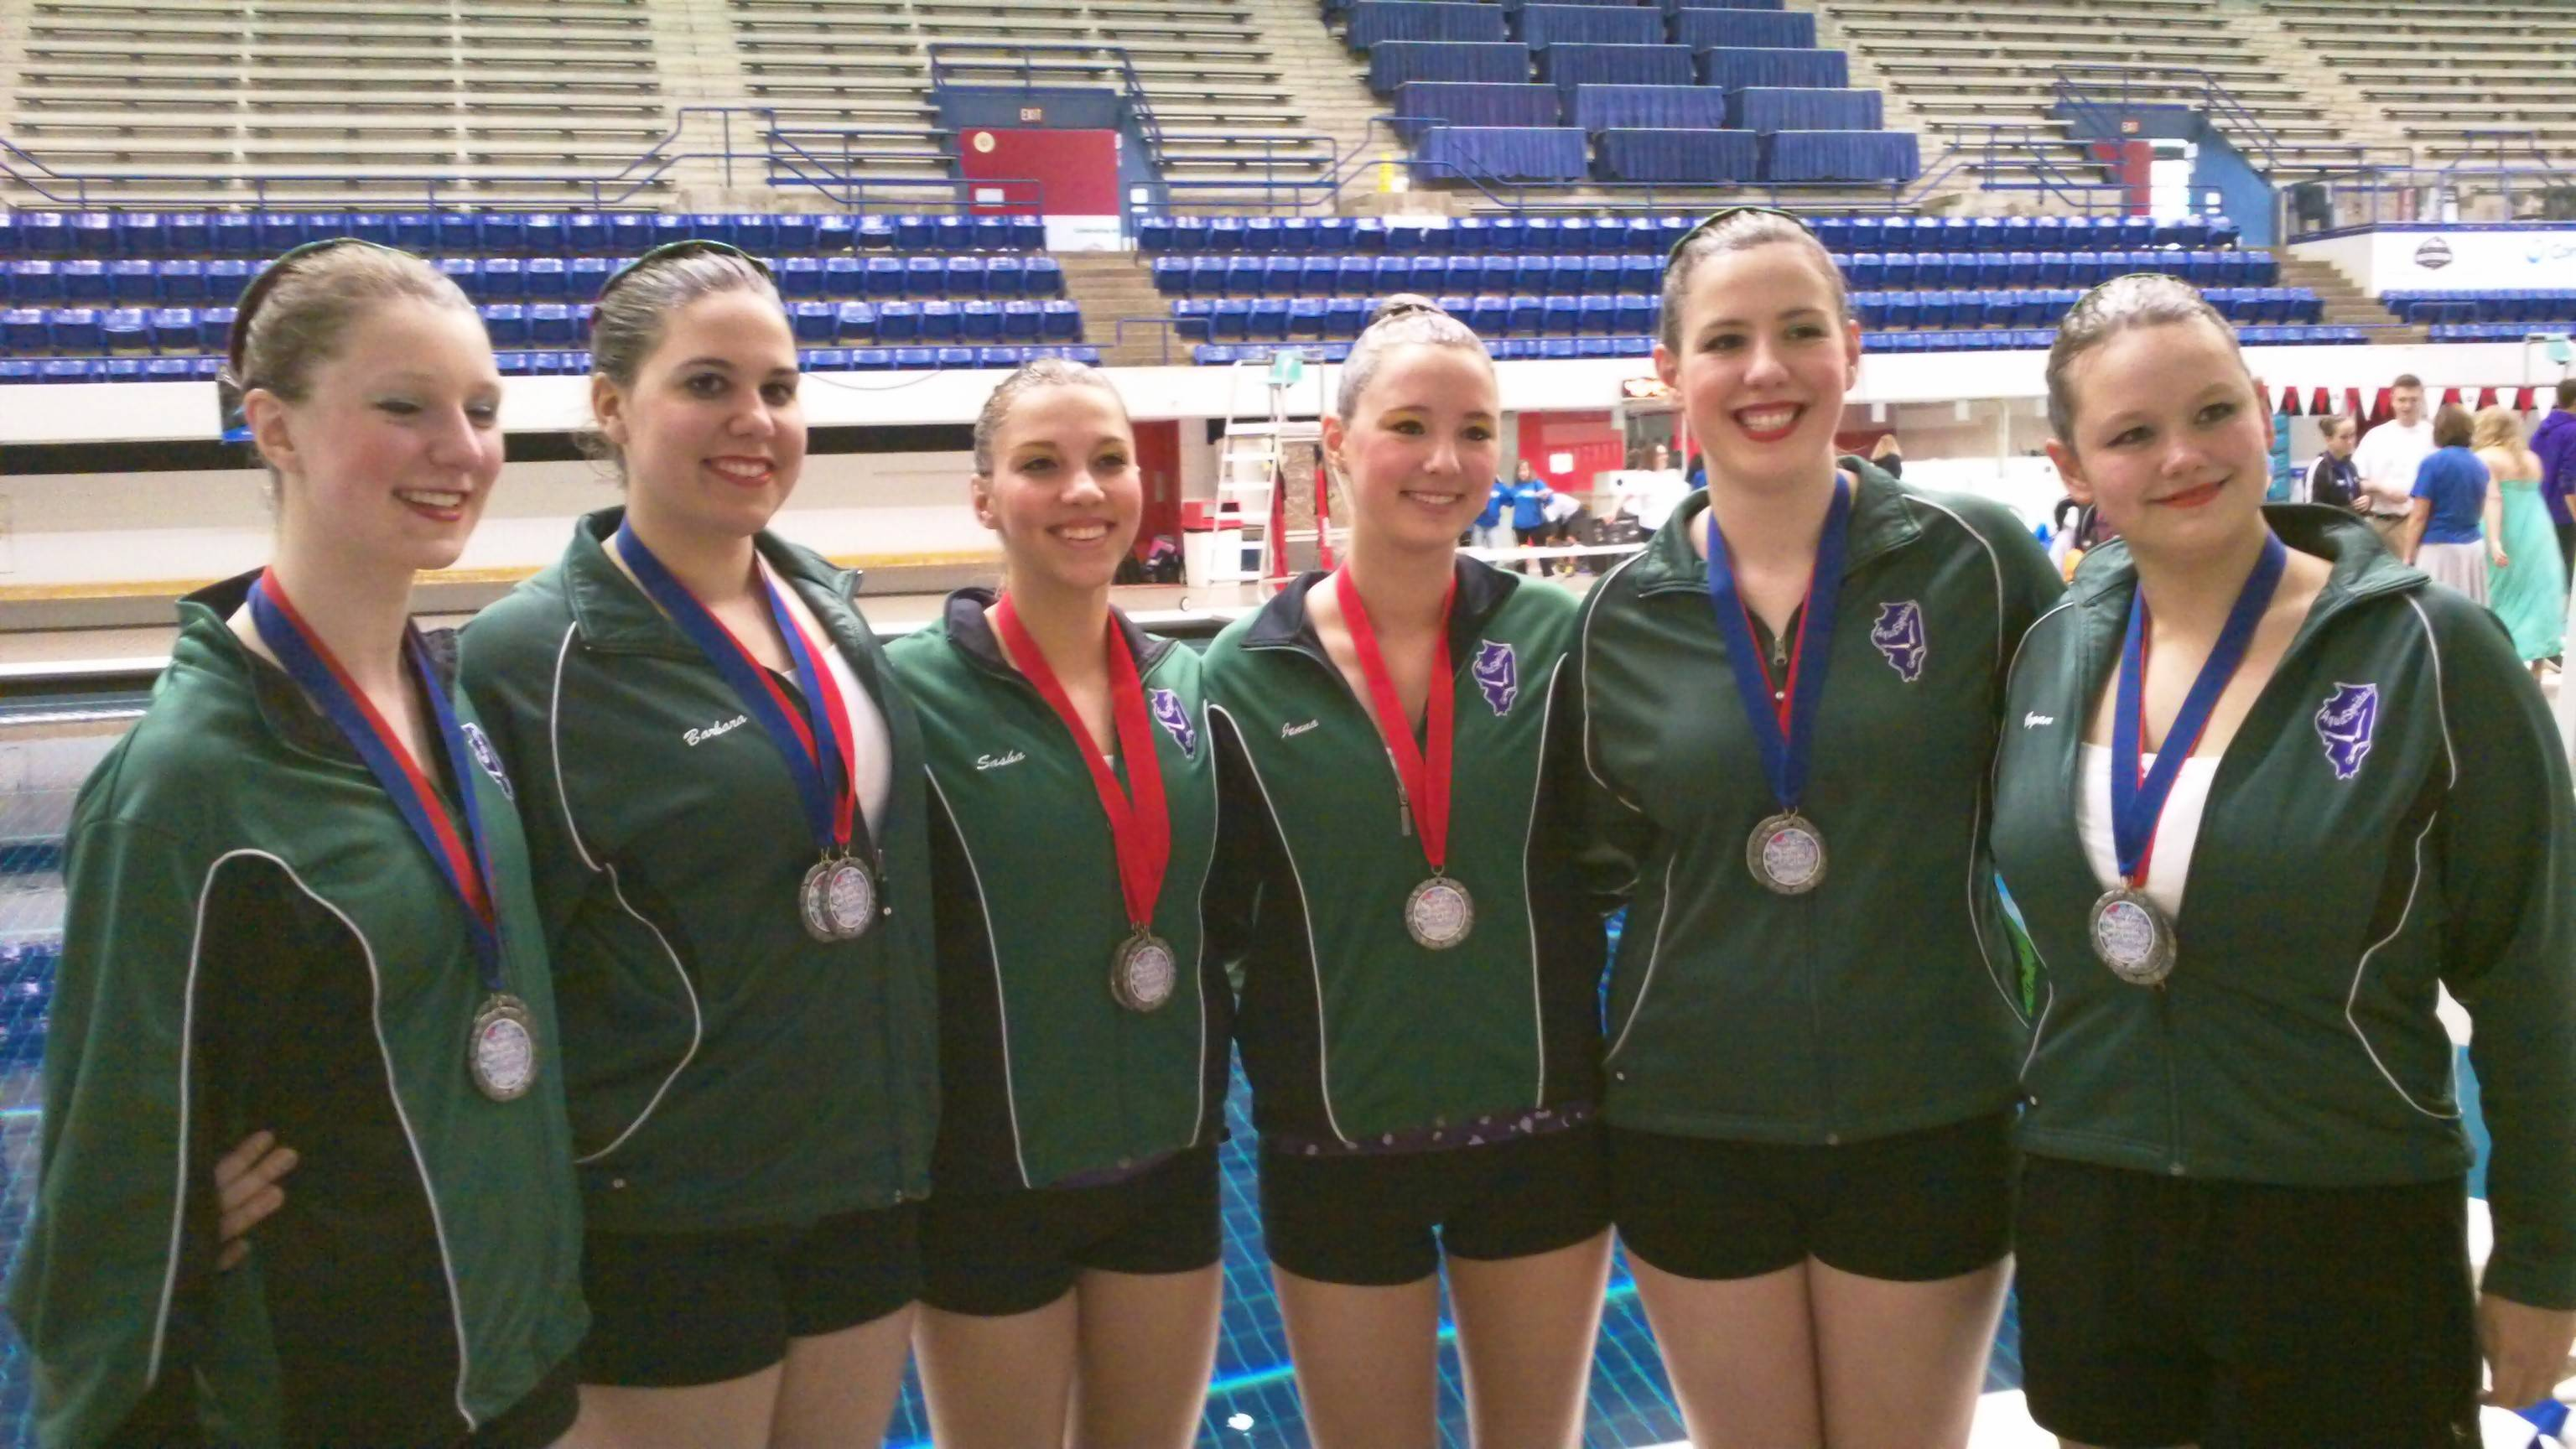 The 16-19 AquaSprites Team, from left, Katie Kenny, Barbara Garcia Stam, Sasha Boudko, Jenna Gudritz, Alice Kenny and Megan Moyer, with their medals at the regional championship in Indianapolis, Indiana, in May.